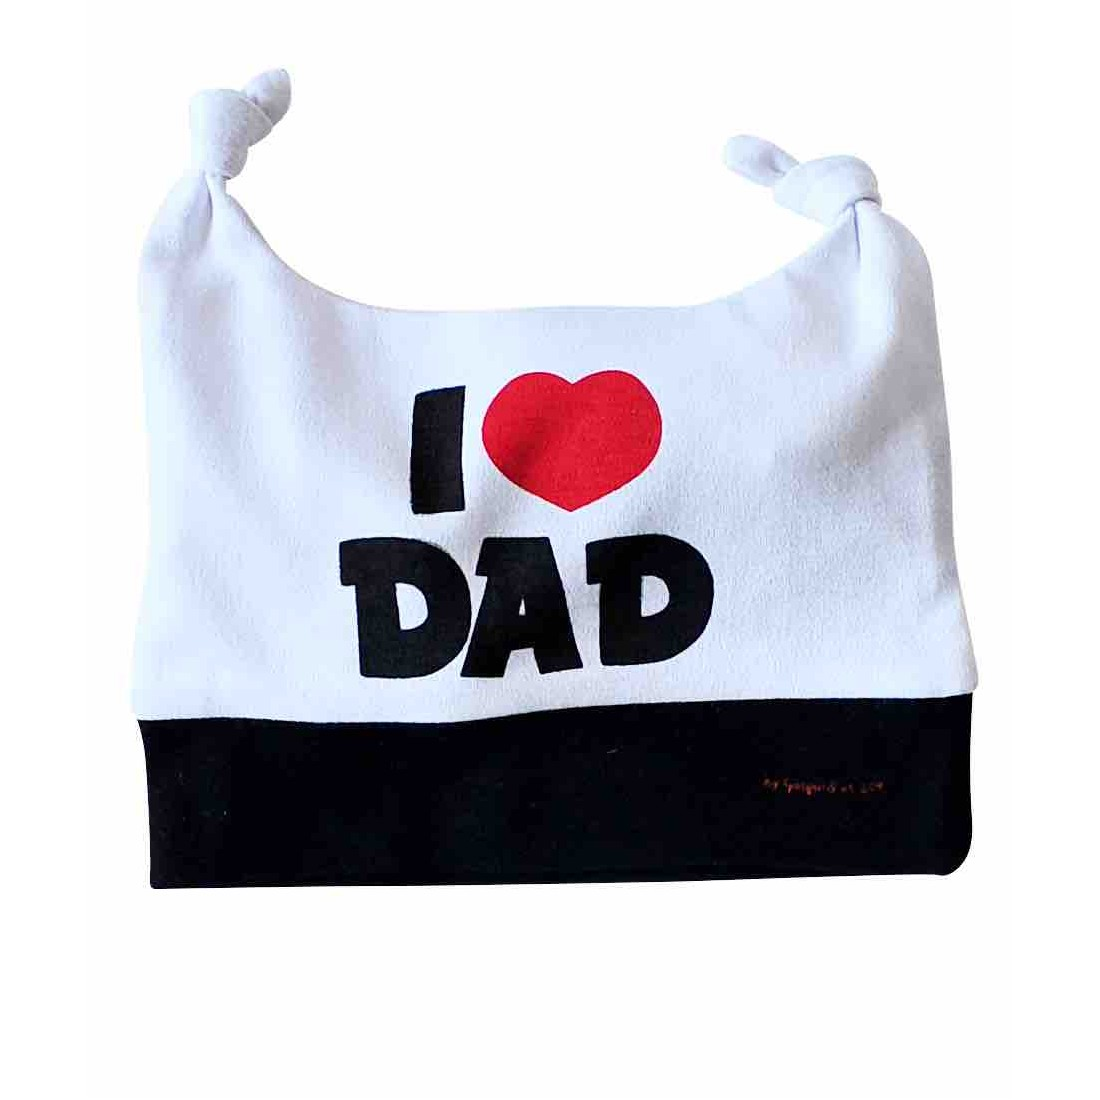 Bonnet bébé I LOVE DAD